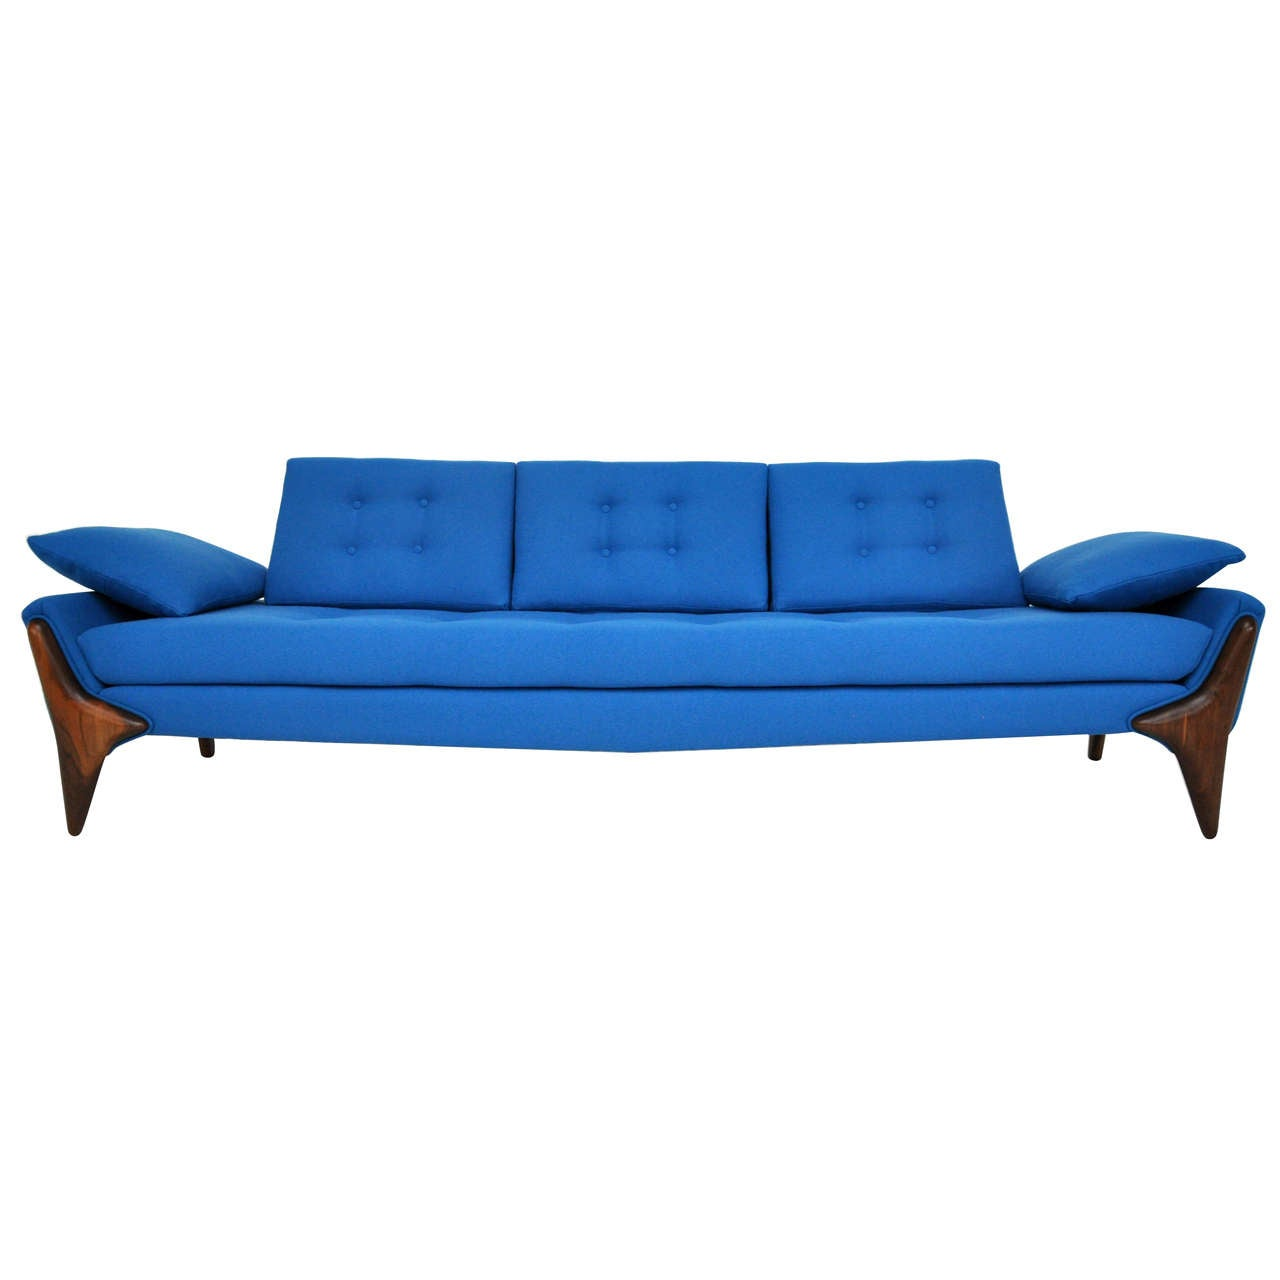 adrian pearsall sofa at 1stdibs adrian pearsall sofa imitation for sale adrian pearsall sofas catalog